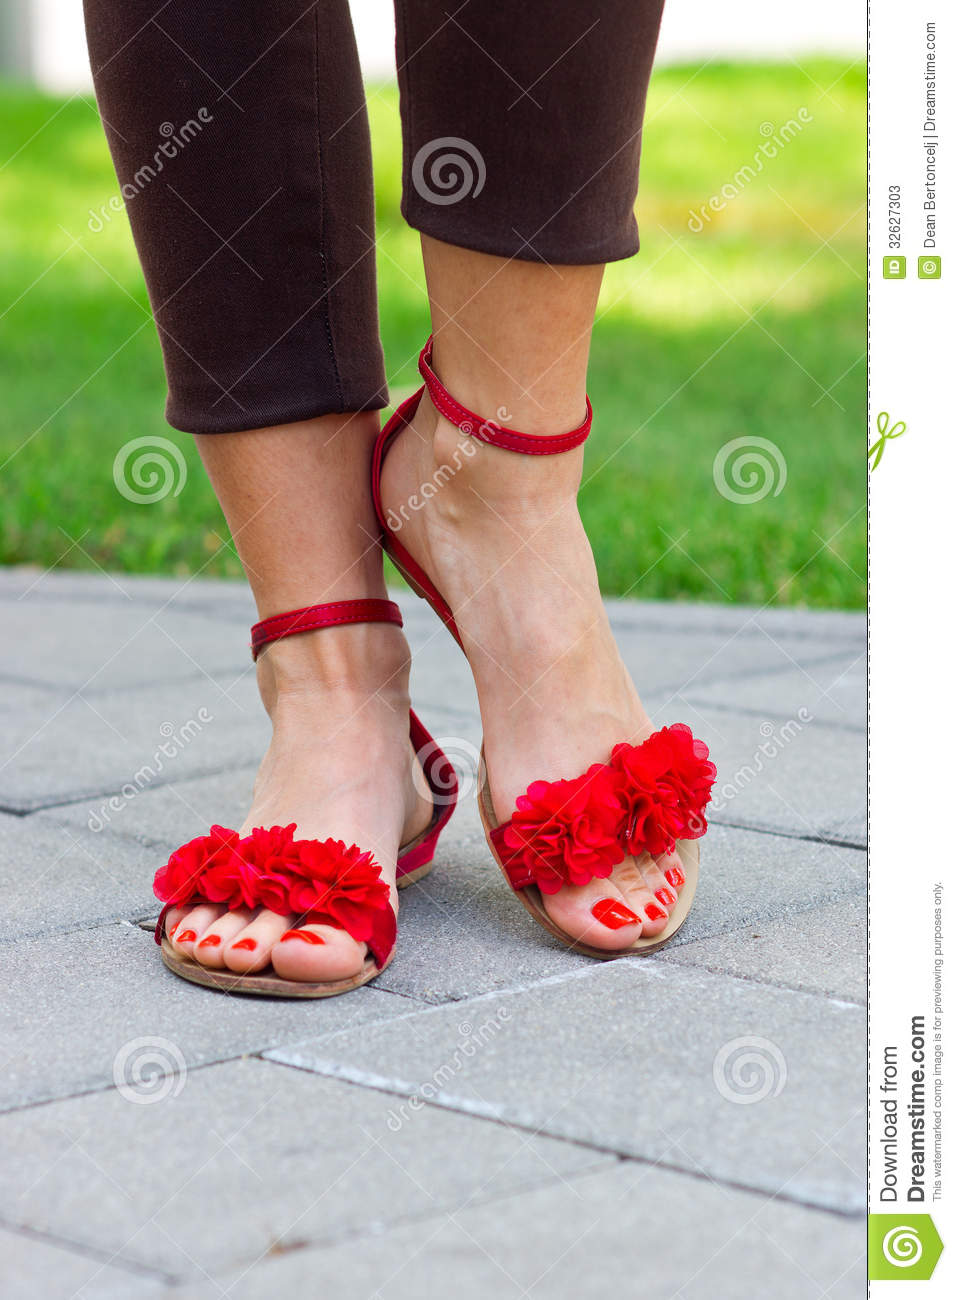 Fantastic  Feet Wearing Summer Sandals And Standing On Old Asphalt Road Woman